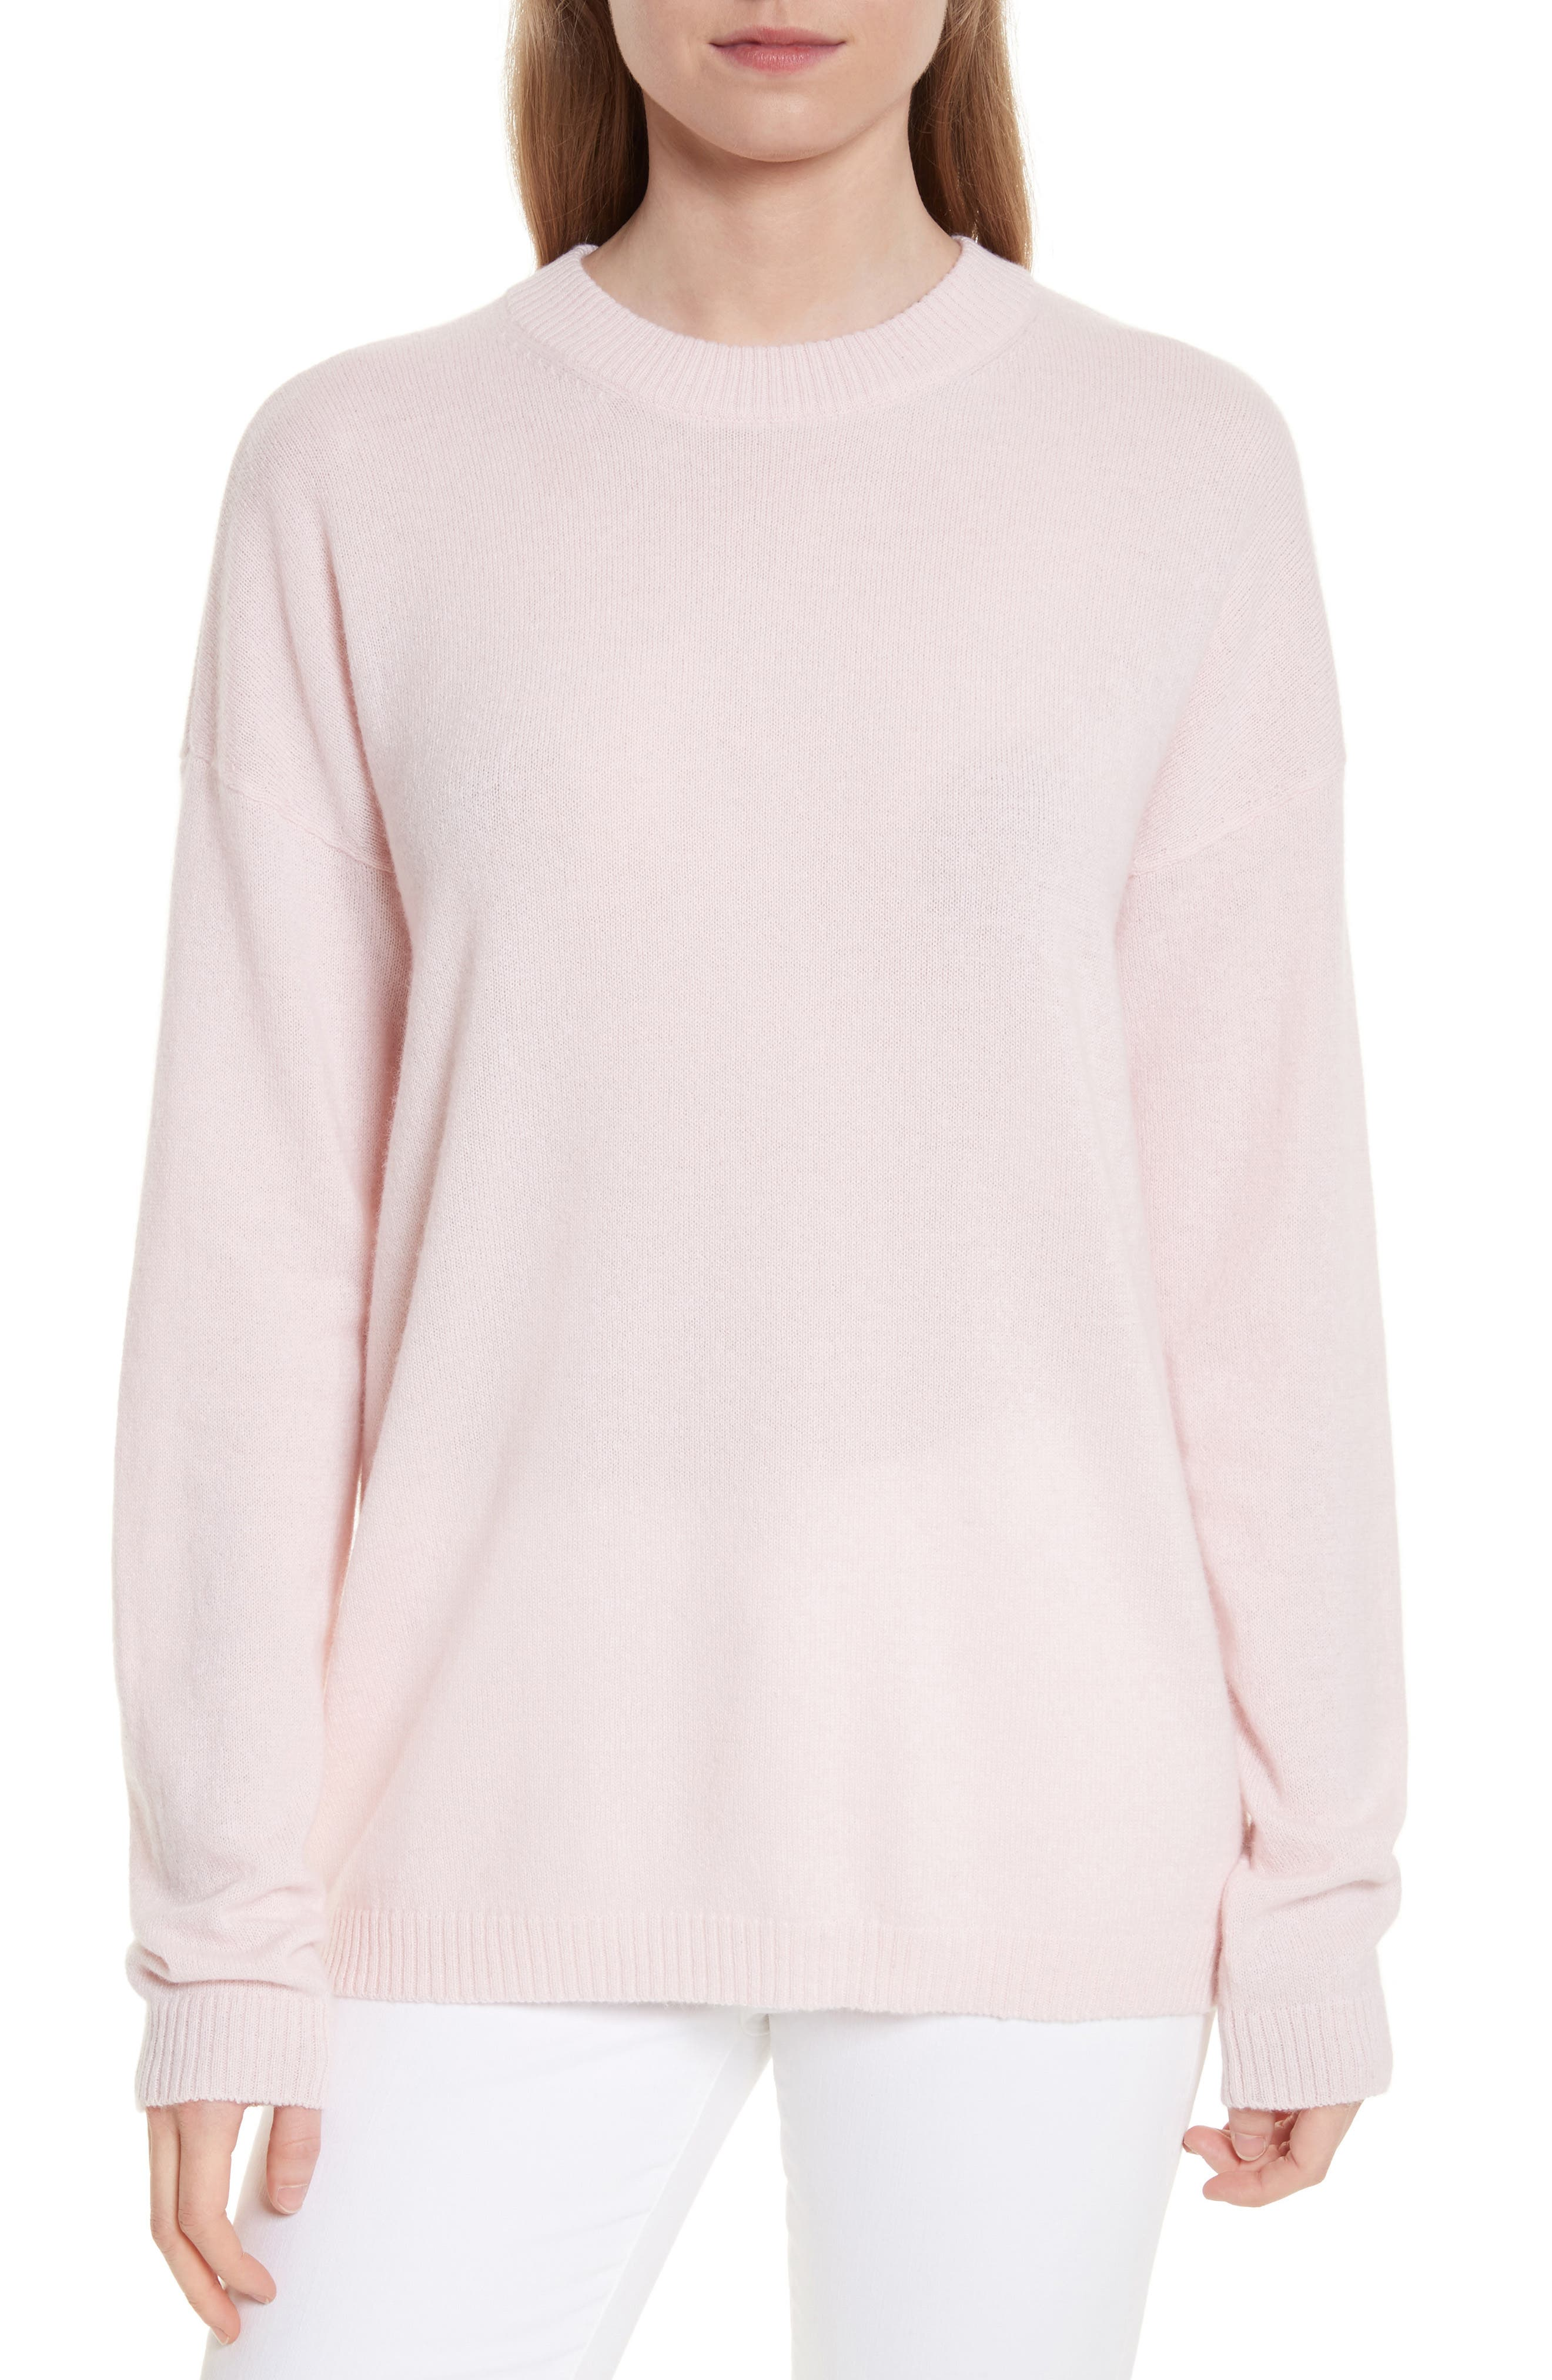 Bryce Oversize Cashmere Sweater,                         Main,                         color, 650